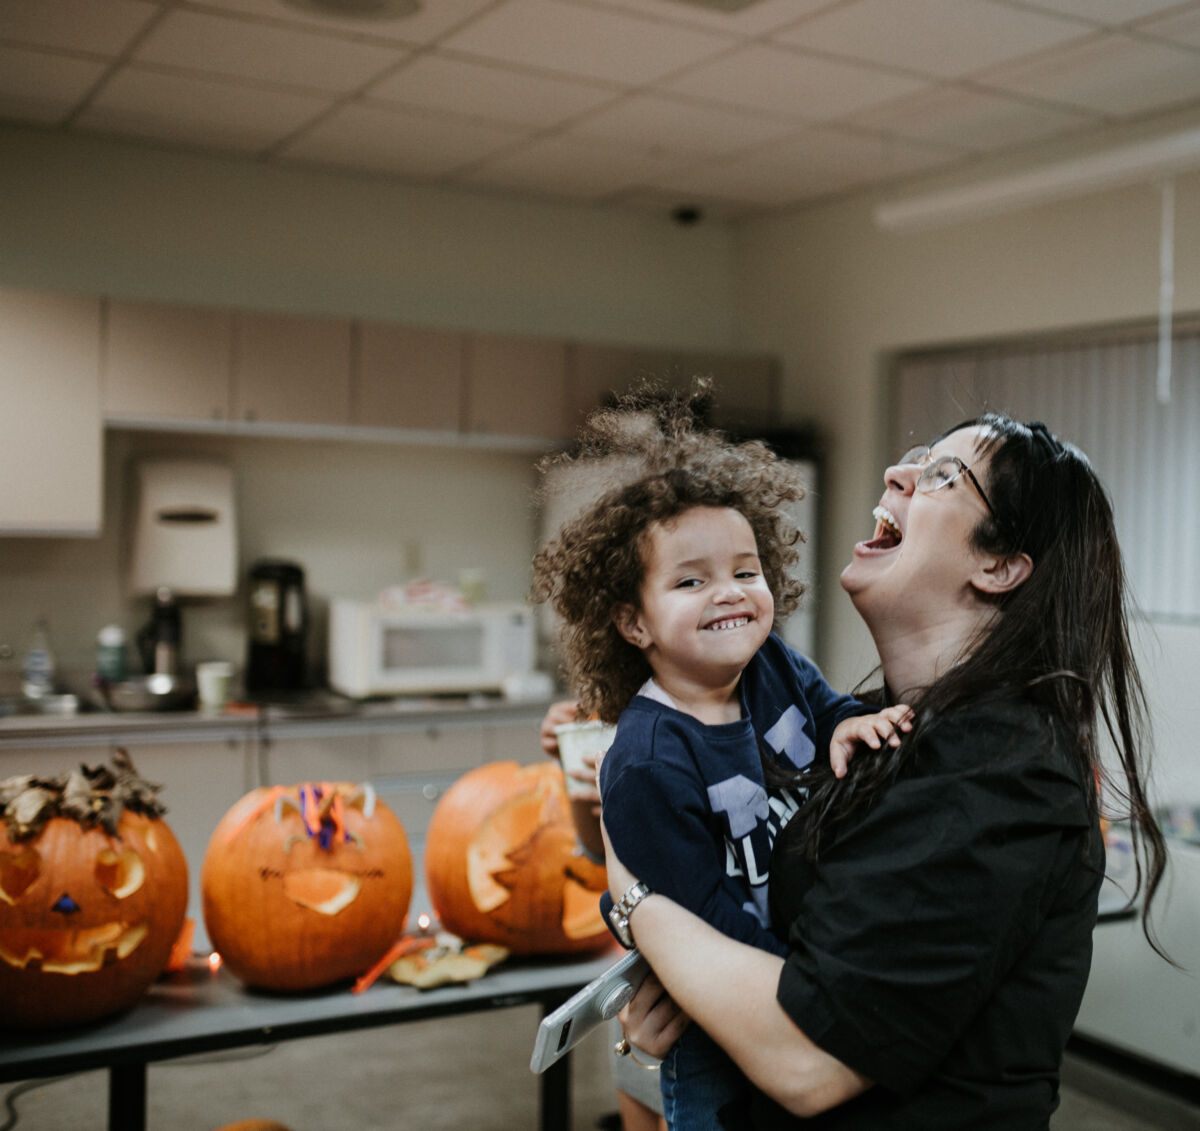 Woman laughs with child